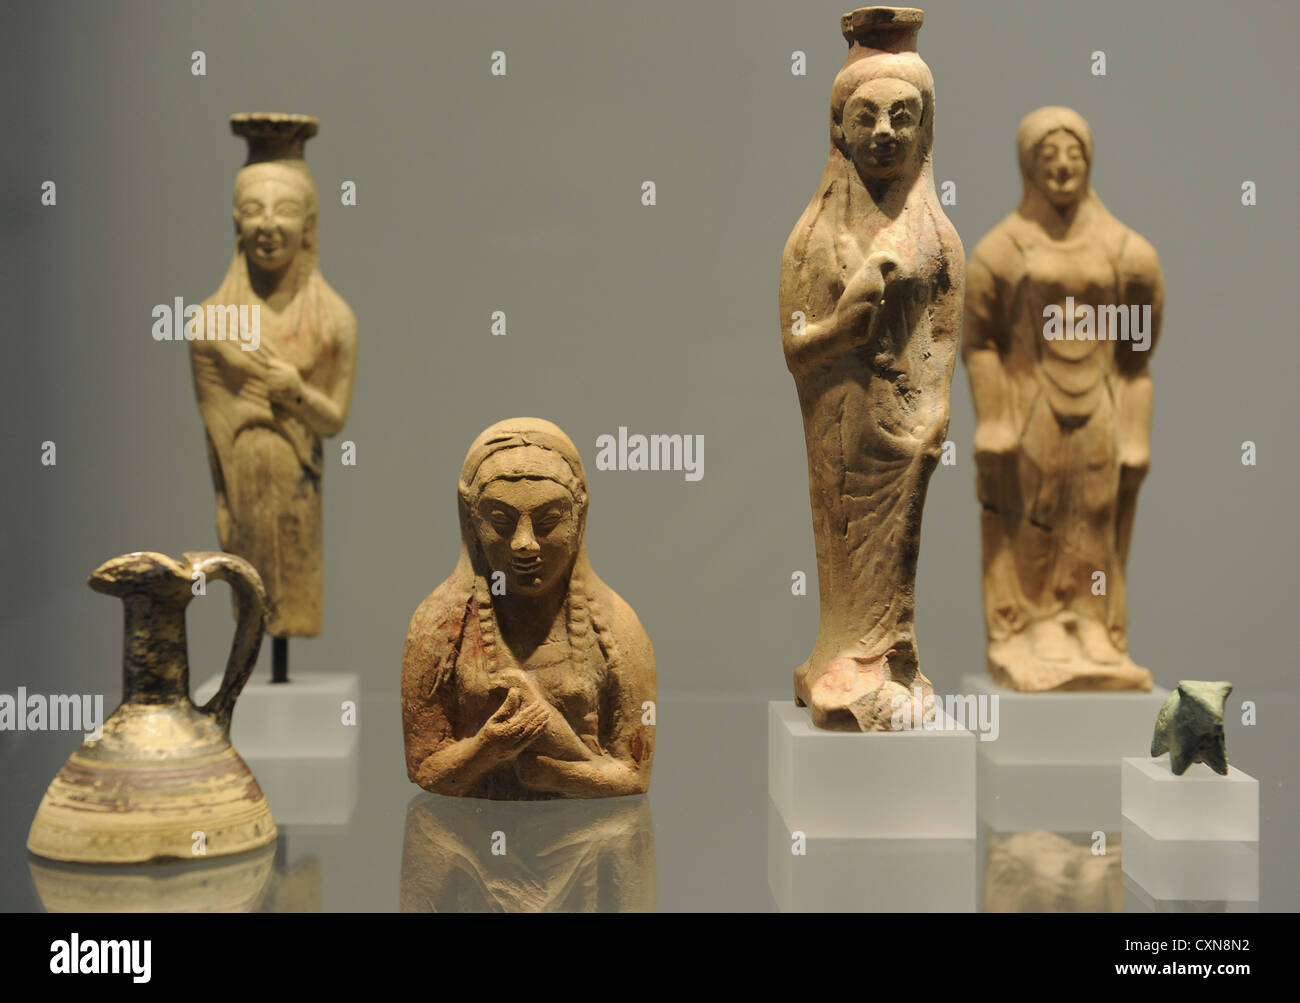 Ancient Art. Mediterranean. Sanctuary. Images of terracotta of the donor or the gods. Ny Carlsberg Glyptotek. Denmark. Stock Photo